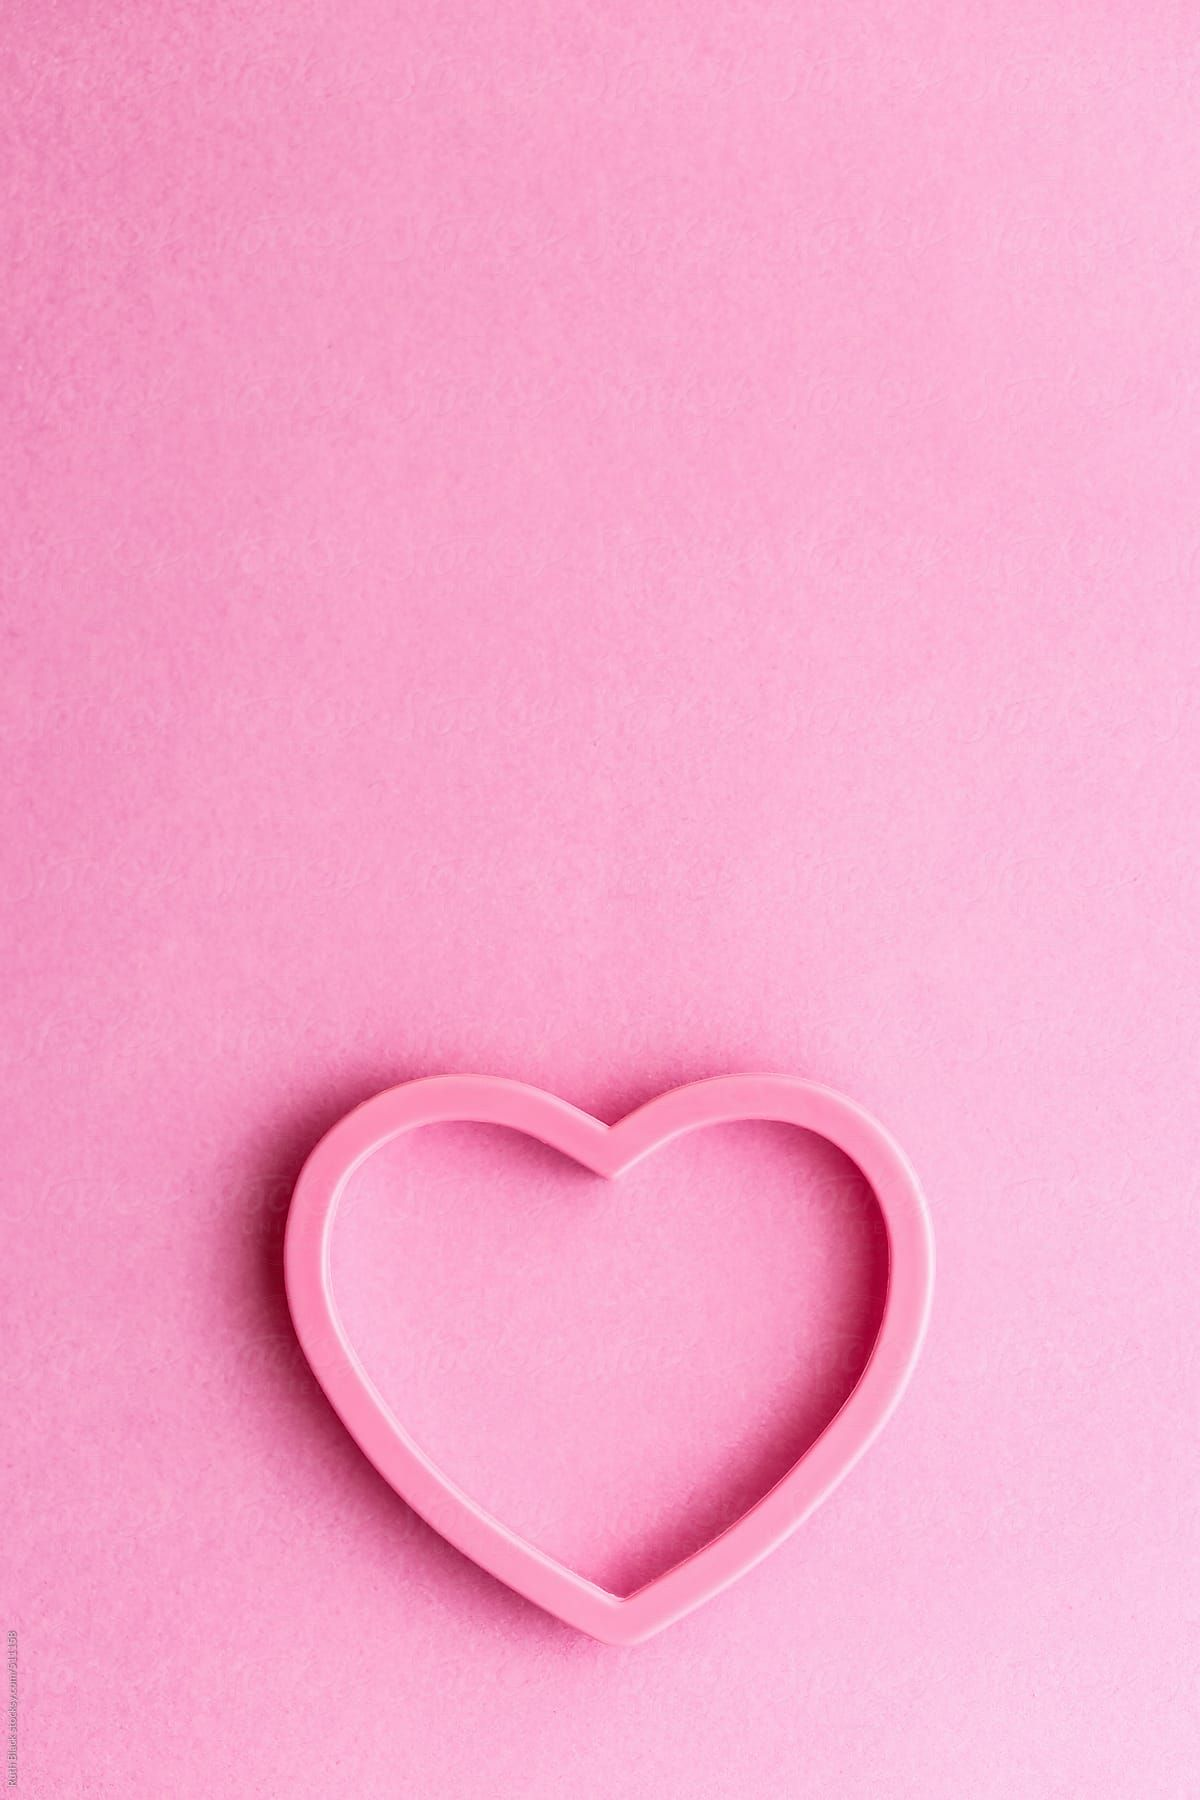 Heart shaped cookie cutter on pink by Ruth Black for Stocksy United